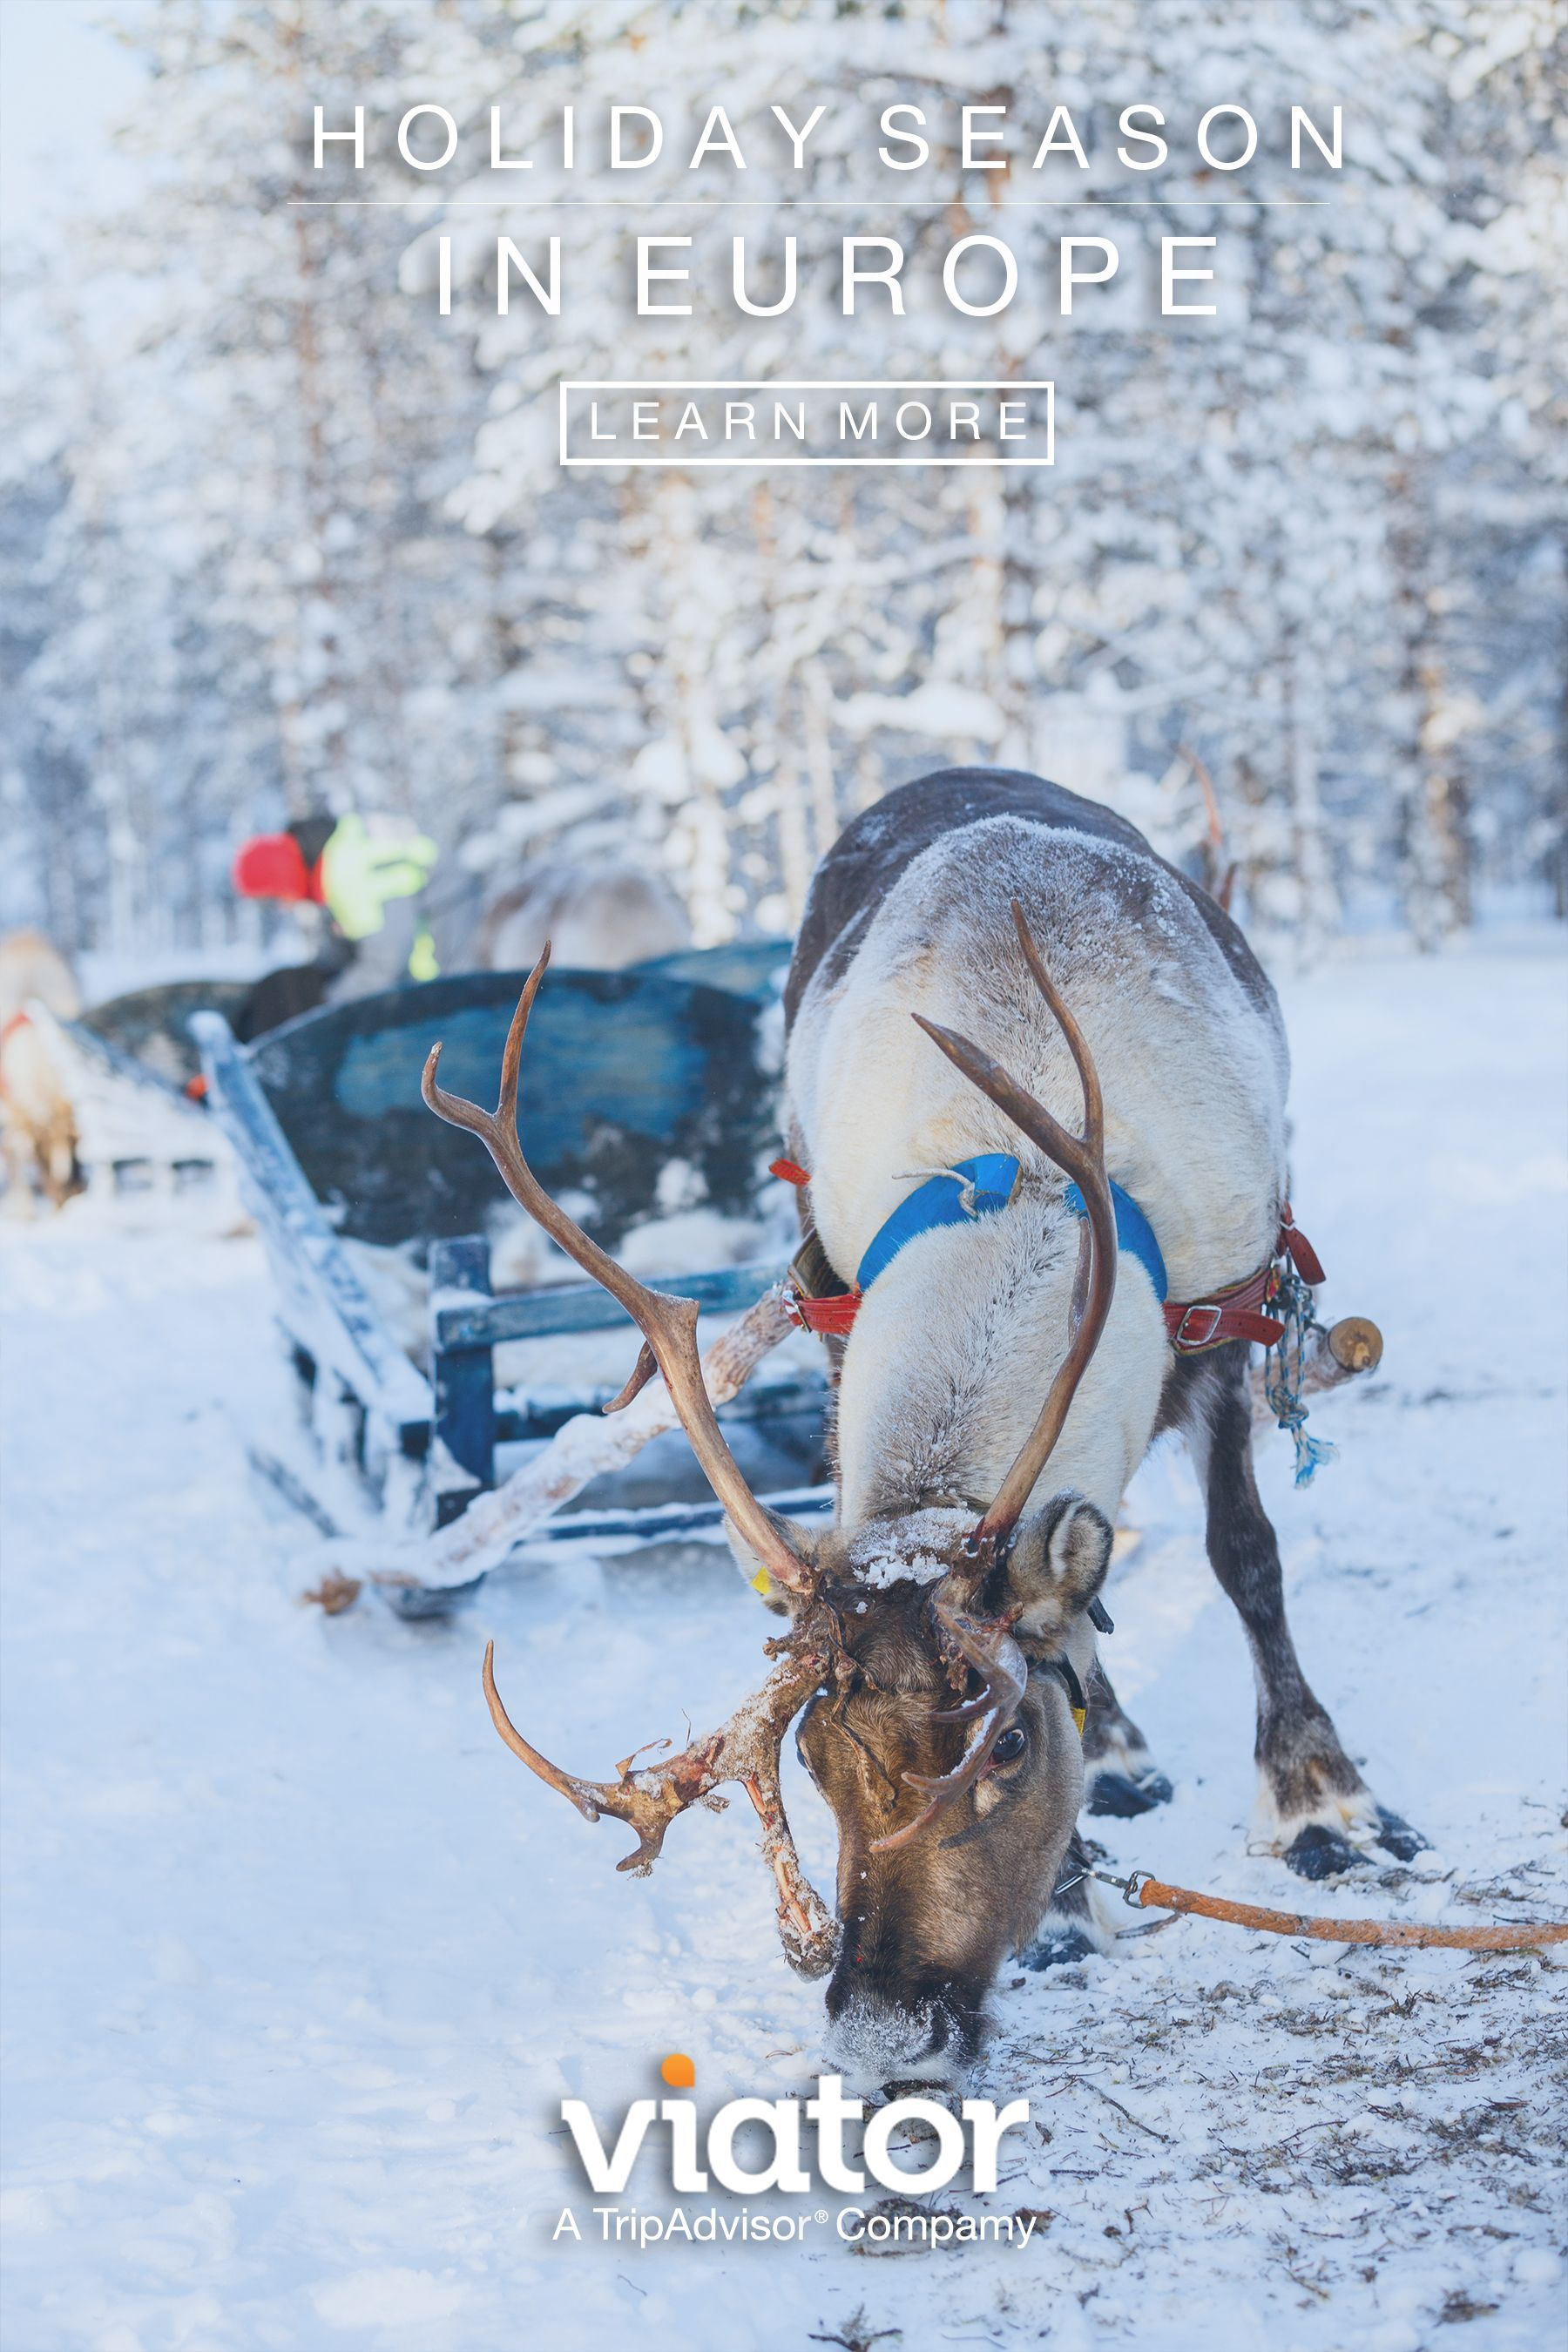 londonphotography Christmas in europe, Sleigh ride